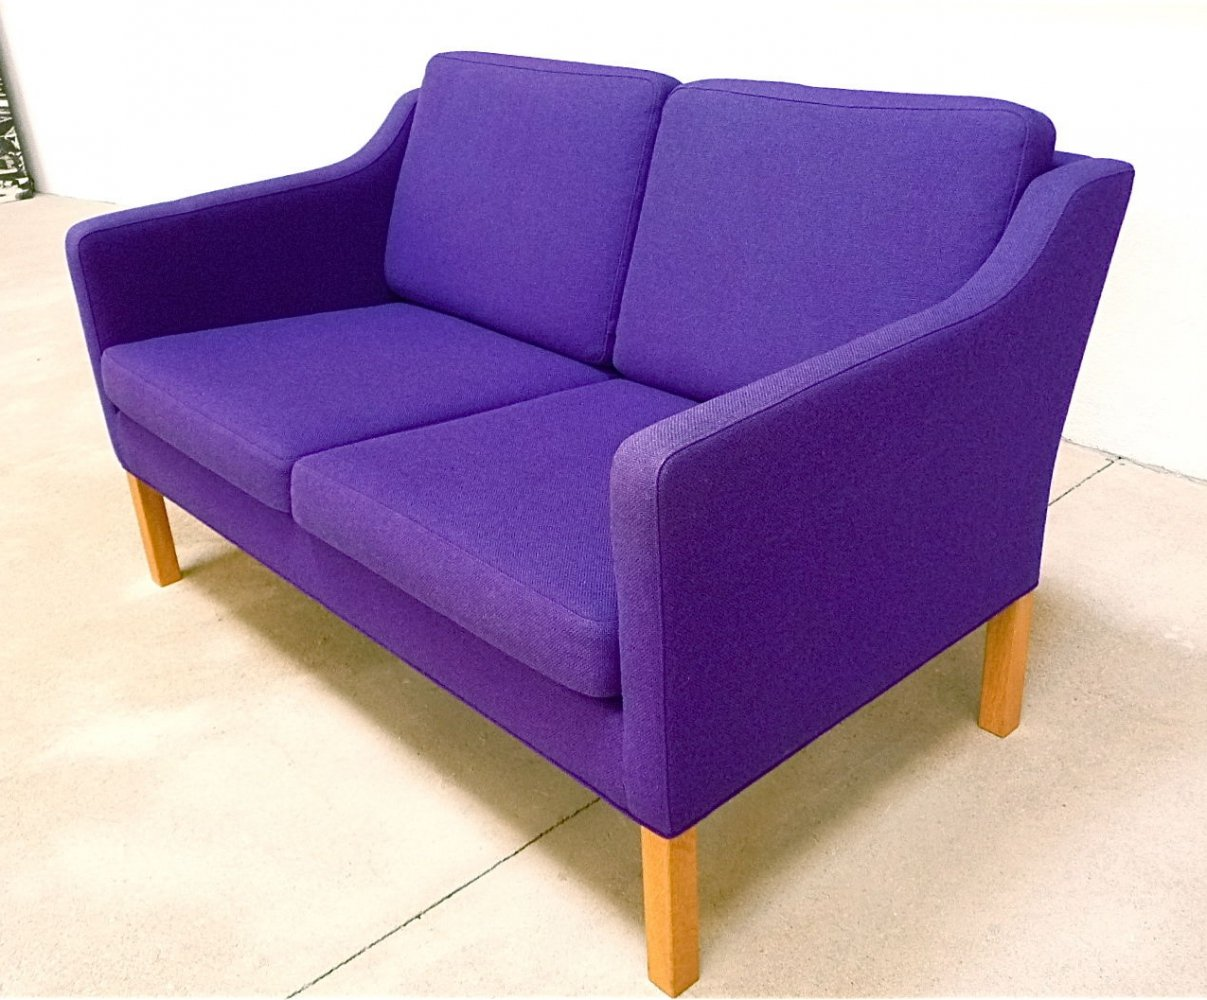 Danish Two-Seater Sofa by Børge Mogensen for Fredericia Stolefabrik, 1960s